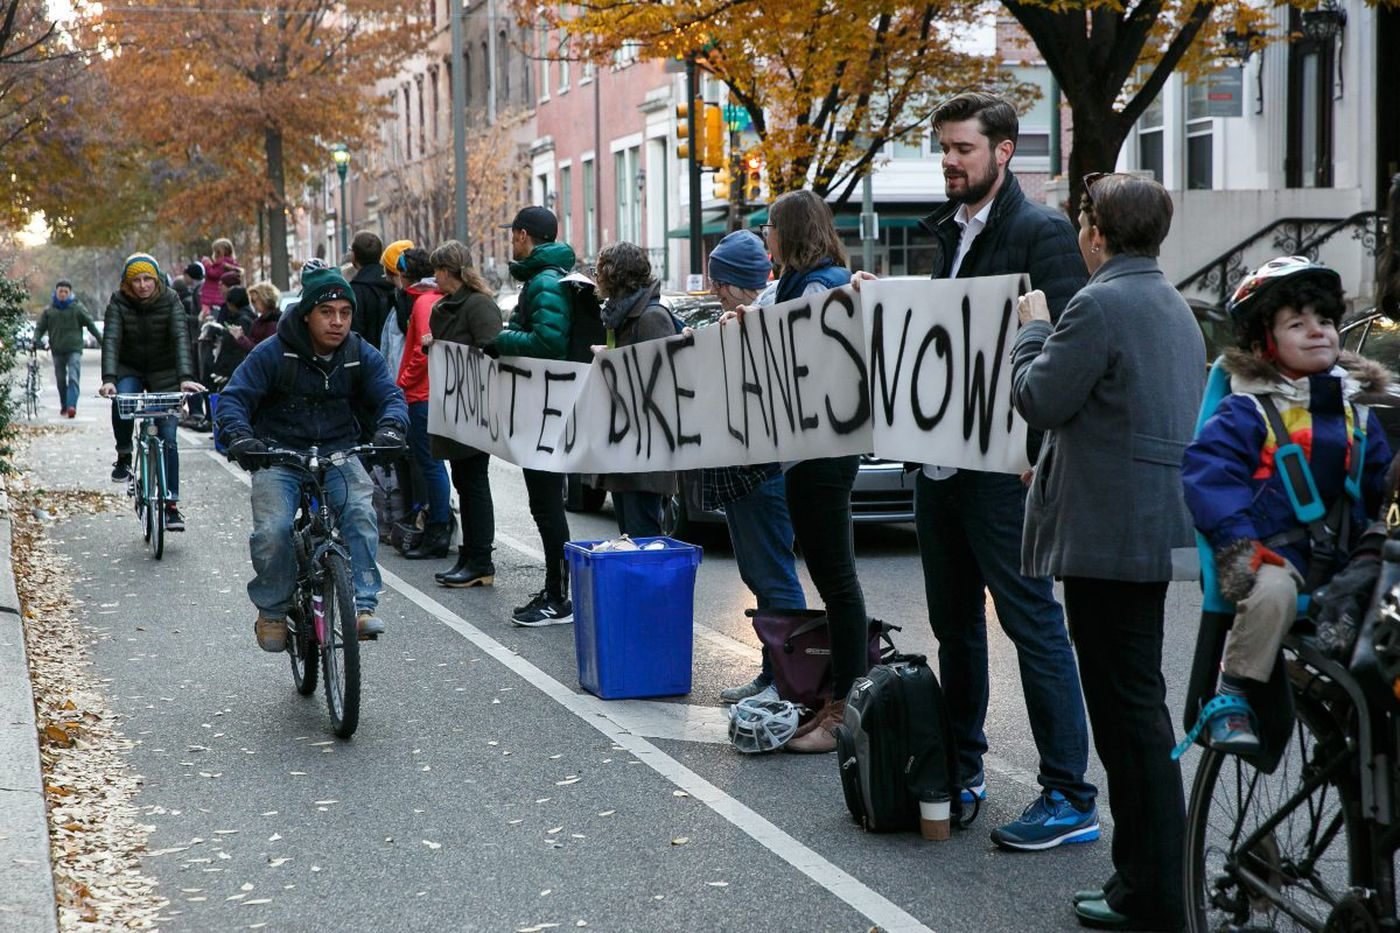 Philly rebuffs calls to speed street safety efforts after cycling accidents